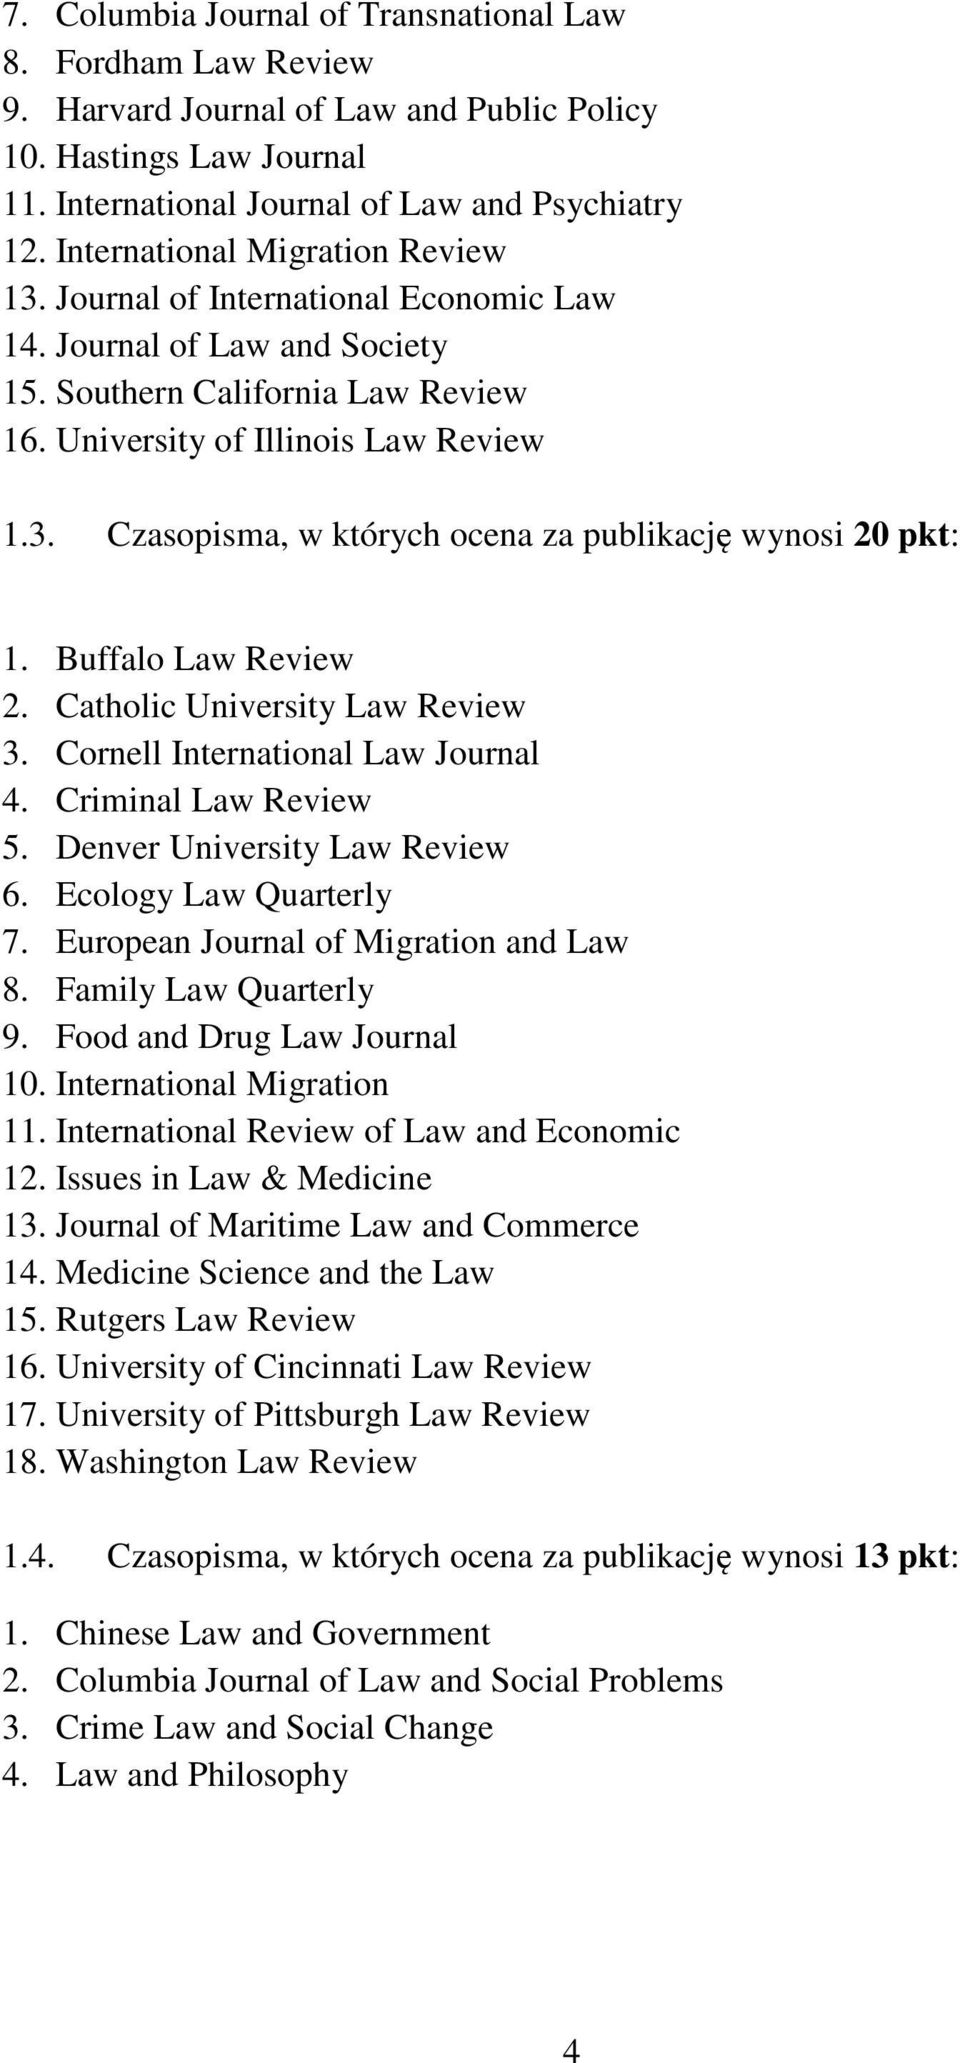 Buffalo Law Review 2. Catholic University Law Review 3. Cornell International Law Journal 4. Criminal Law Review 5. Denver University Law Review 6. Ecology Law Quarterly 7.